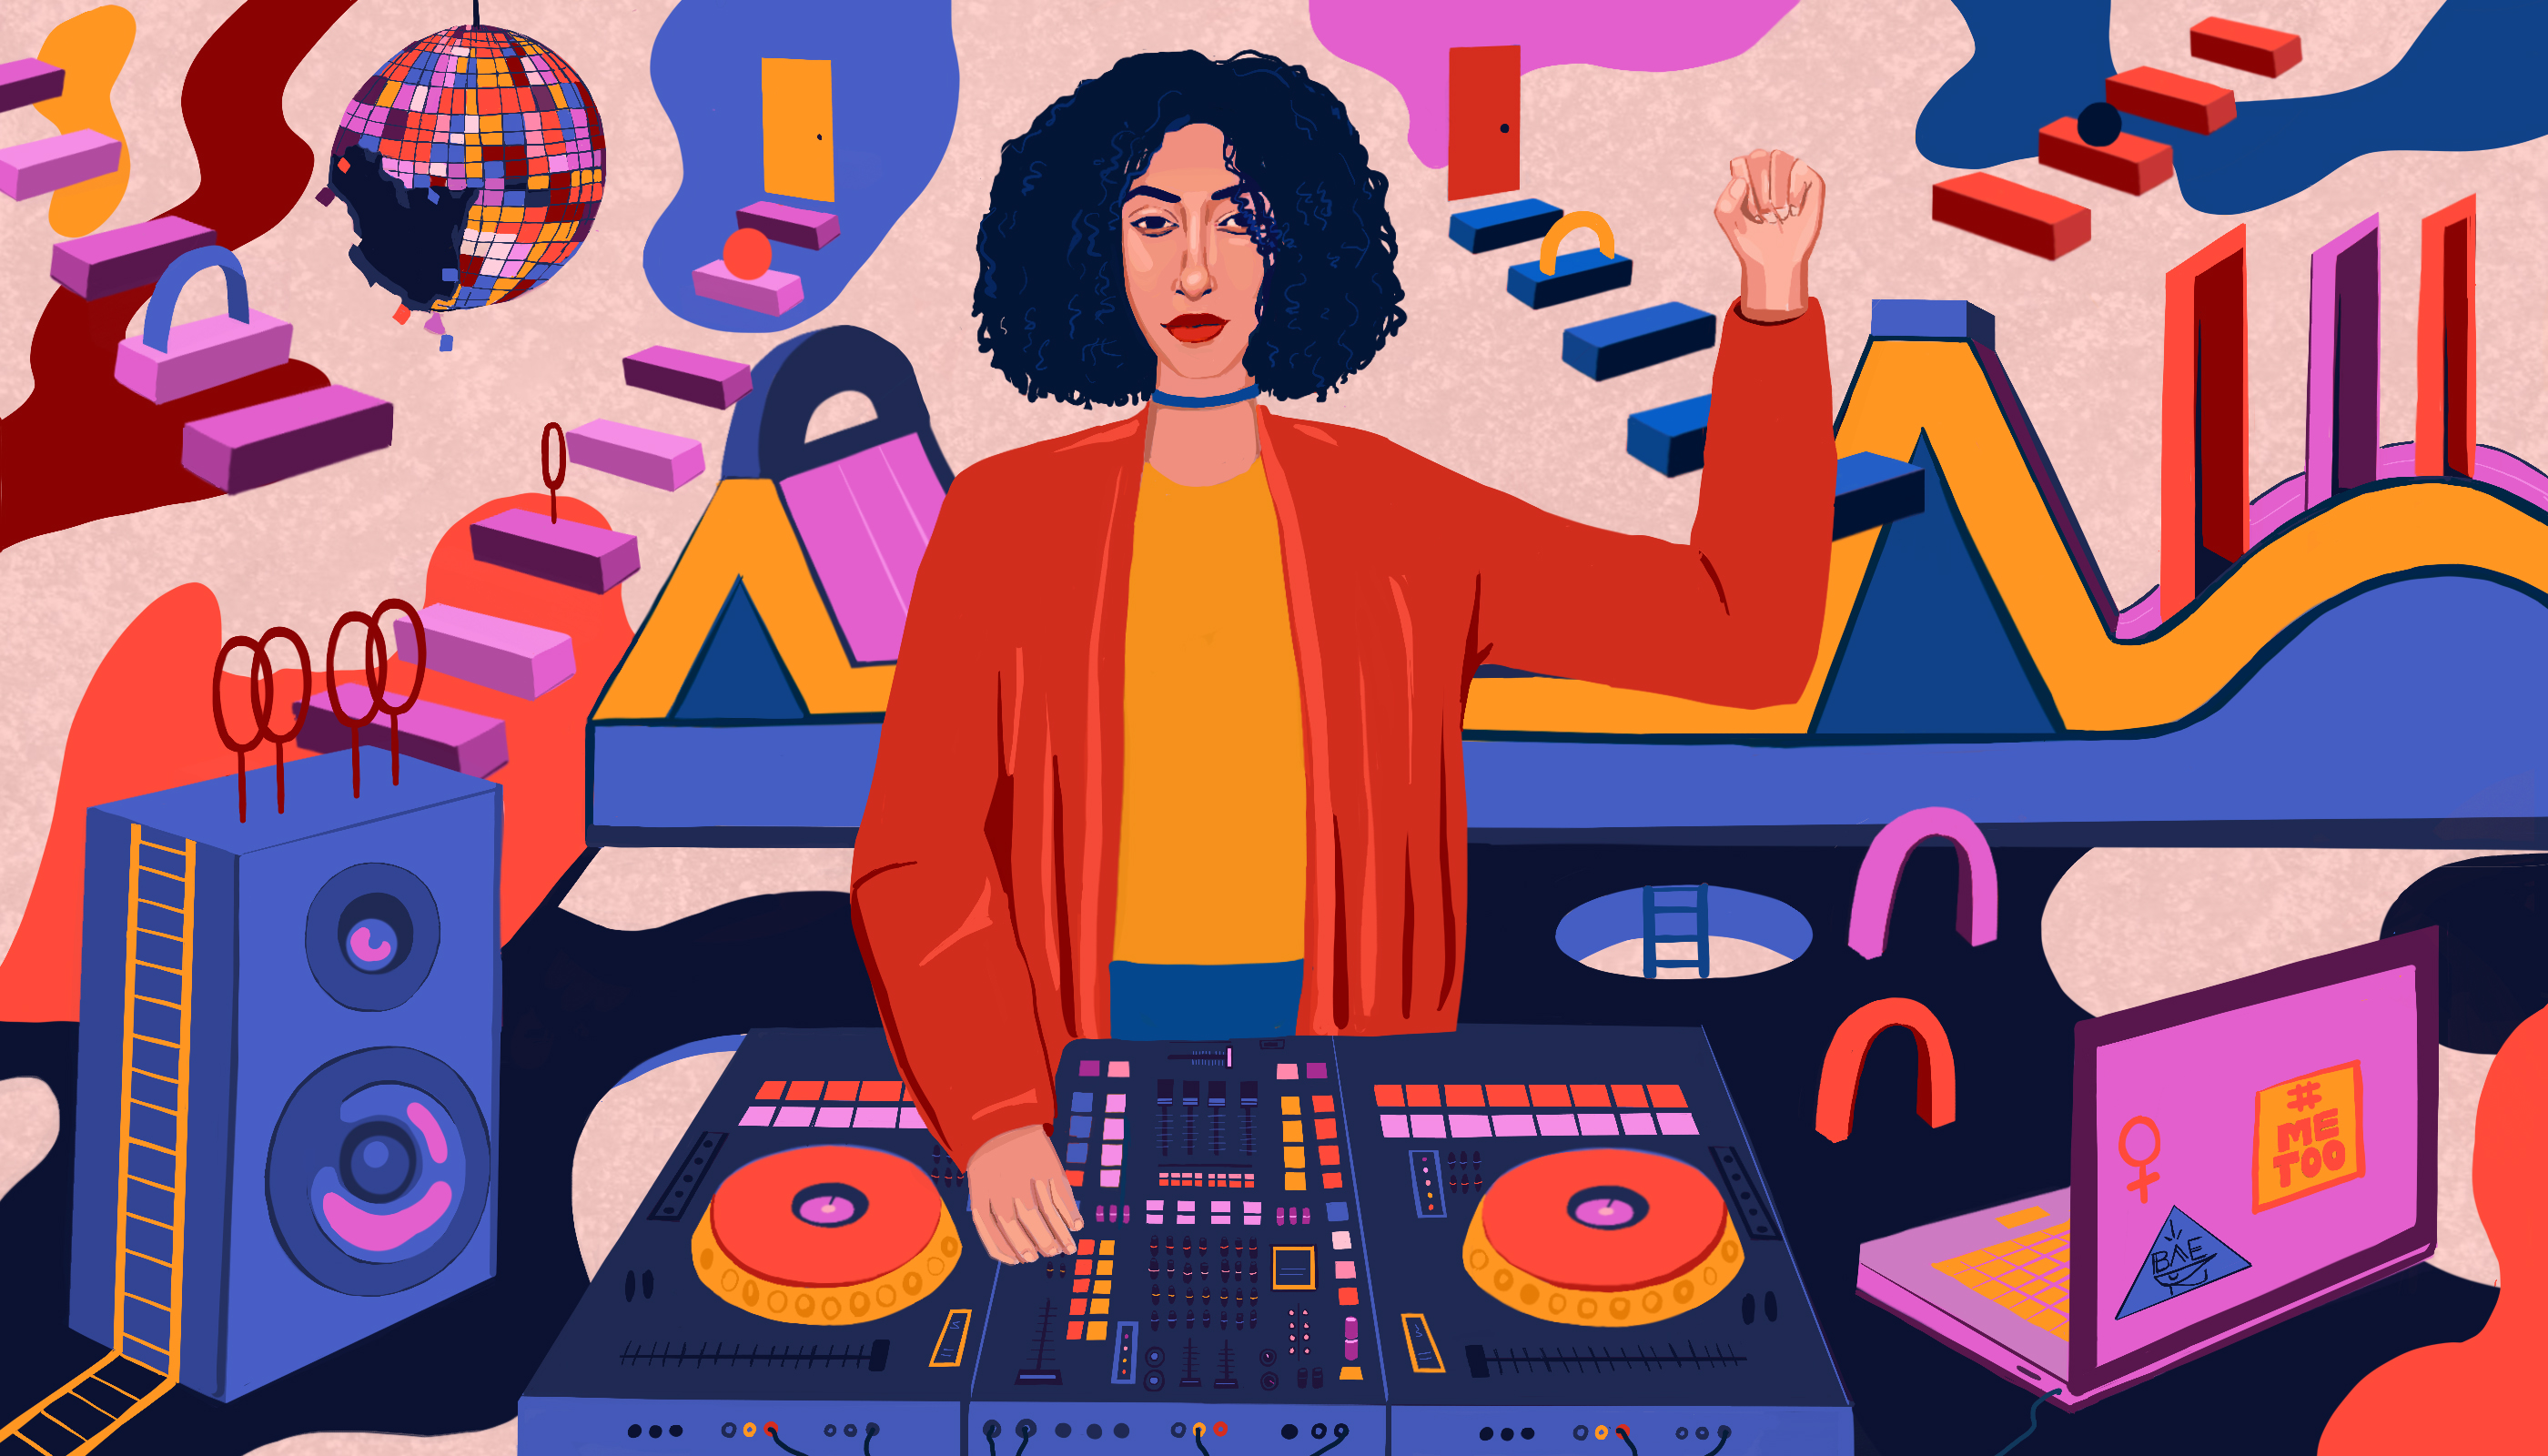 an illustration of a lightskinned woman with curly hair spinning records with a disco ball floating over her head